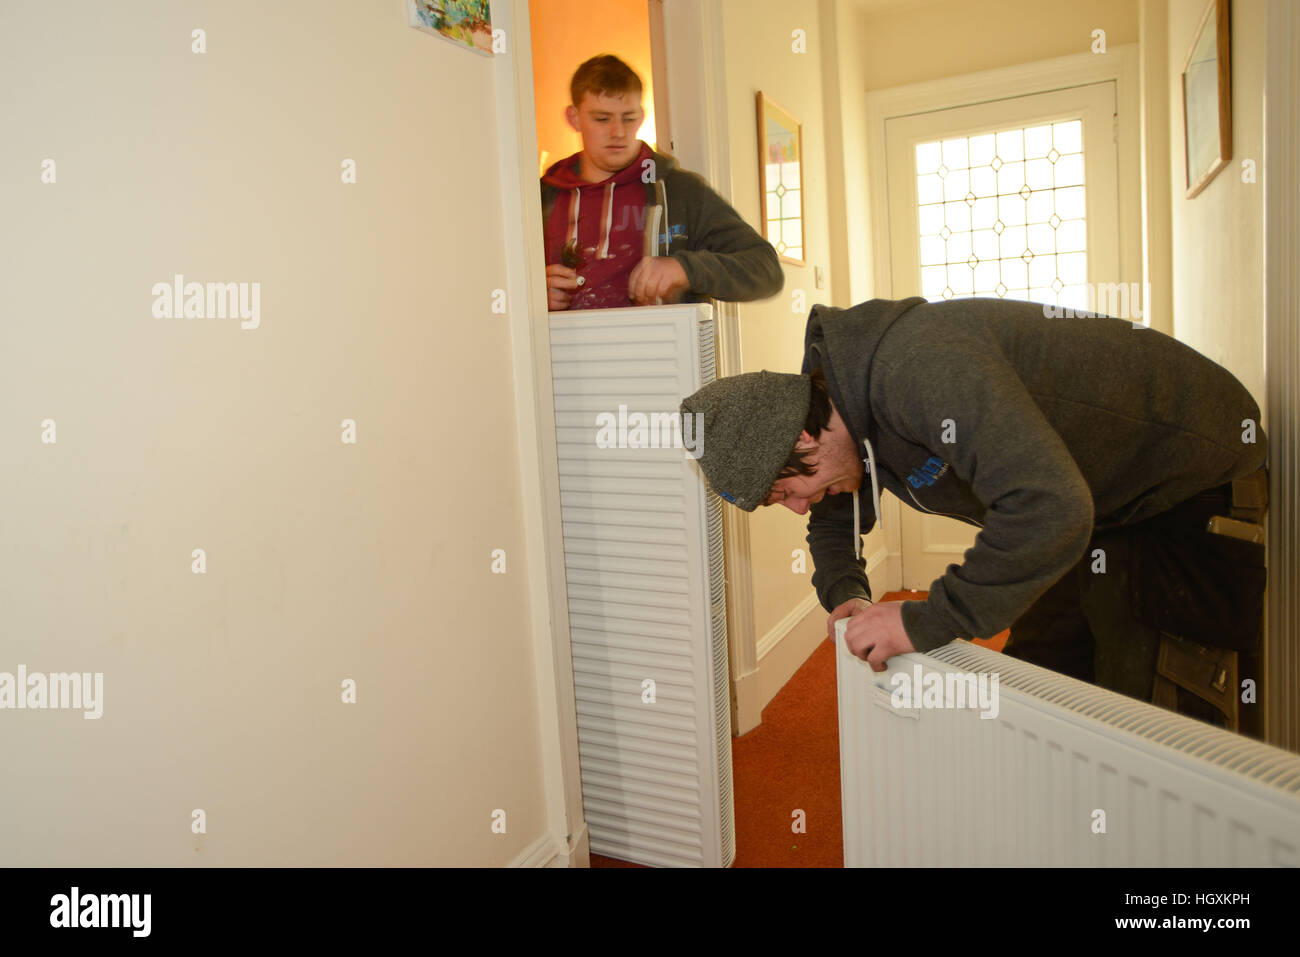 Plumbers fitting new radiators in an old house in Aberdeen Scotland - Stock Image